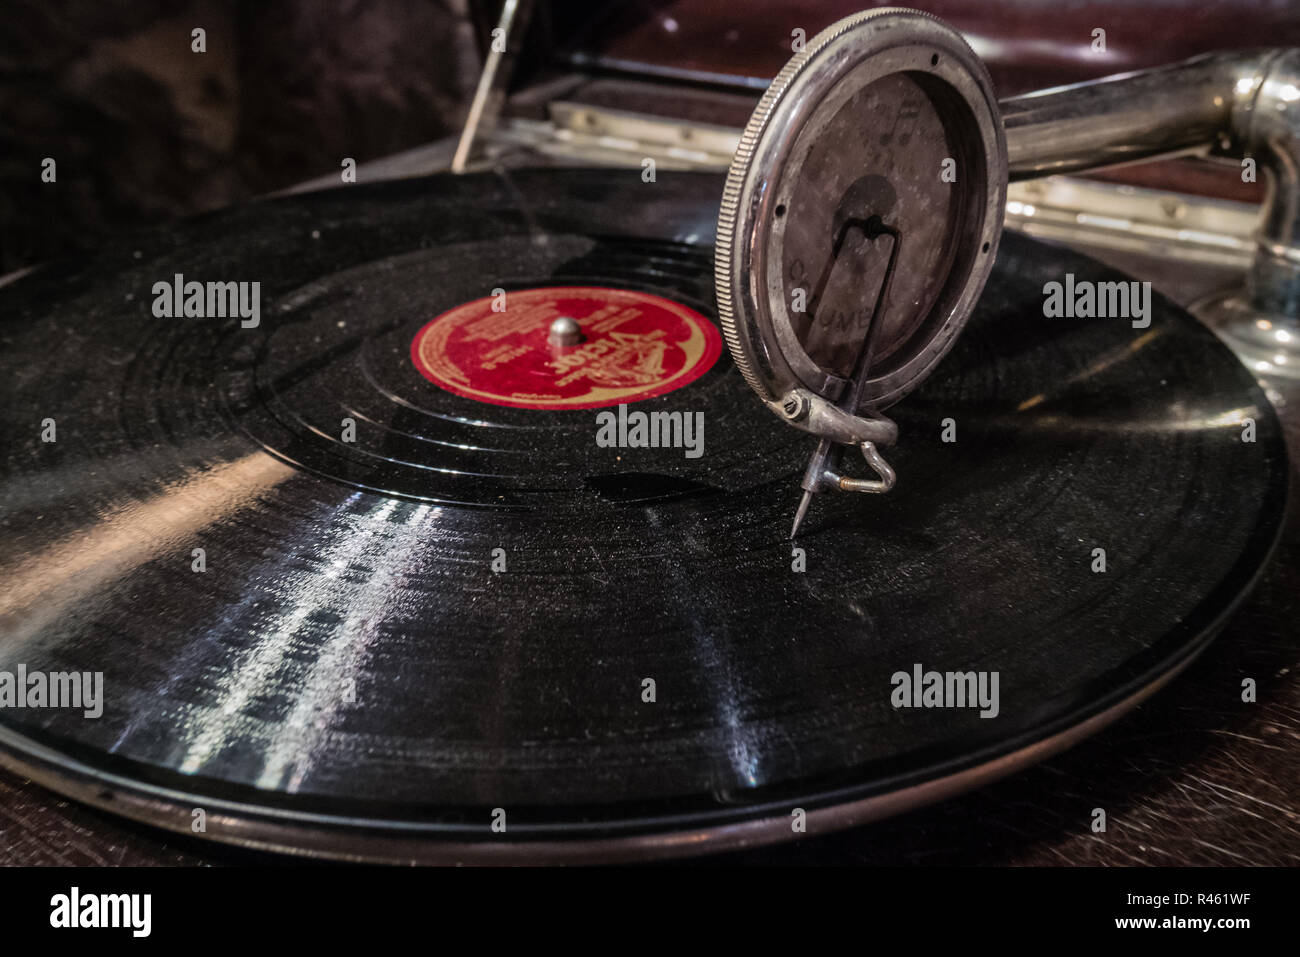 vintage vinyl record player from 1920s Stock Photo: 226326619 - Alamy